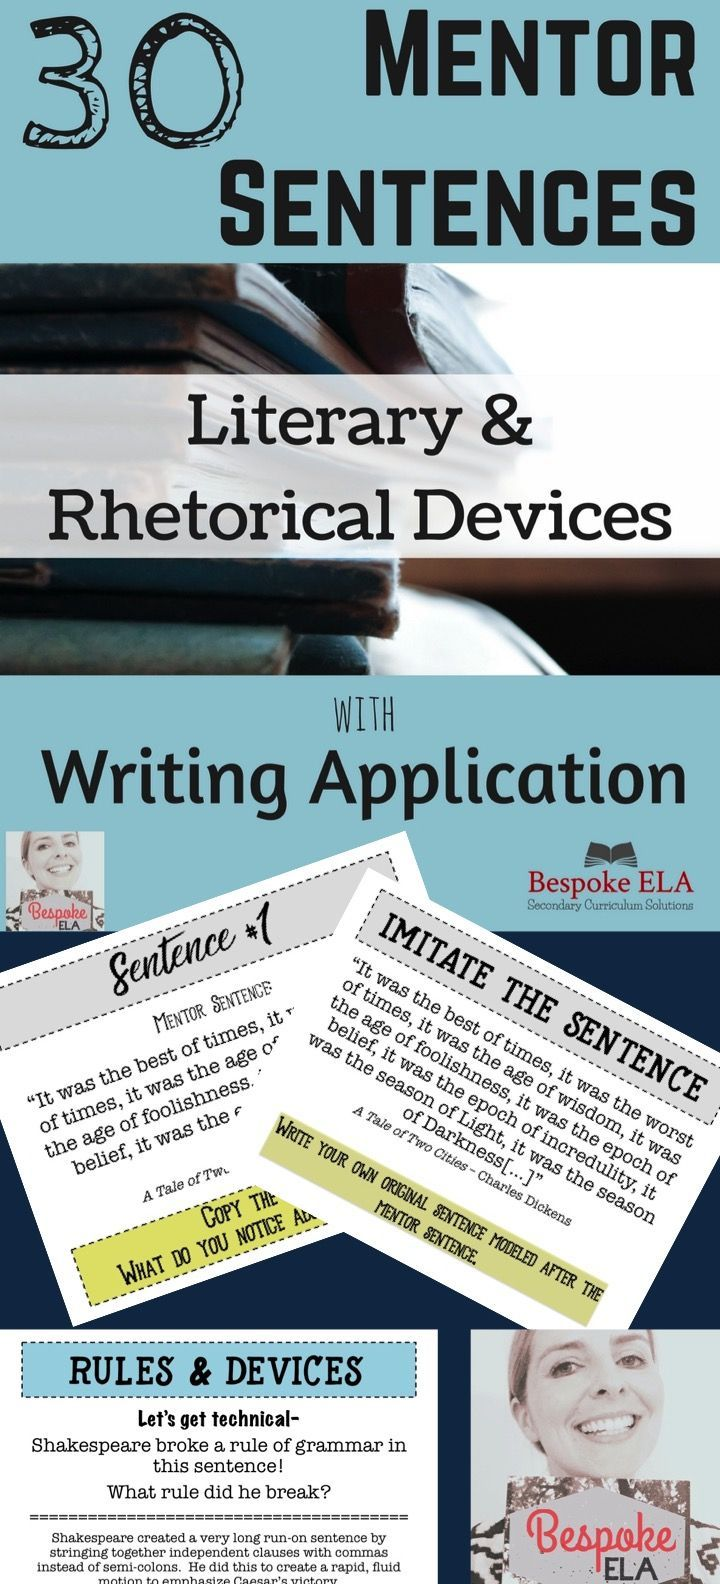 Literature craft and voice 2nd edition - Literature Craft And Voice 2nd Edition 30 Mentor Sentences For Literary Rhetorical Devices With Writing Download